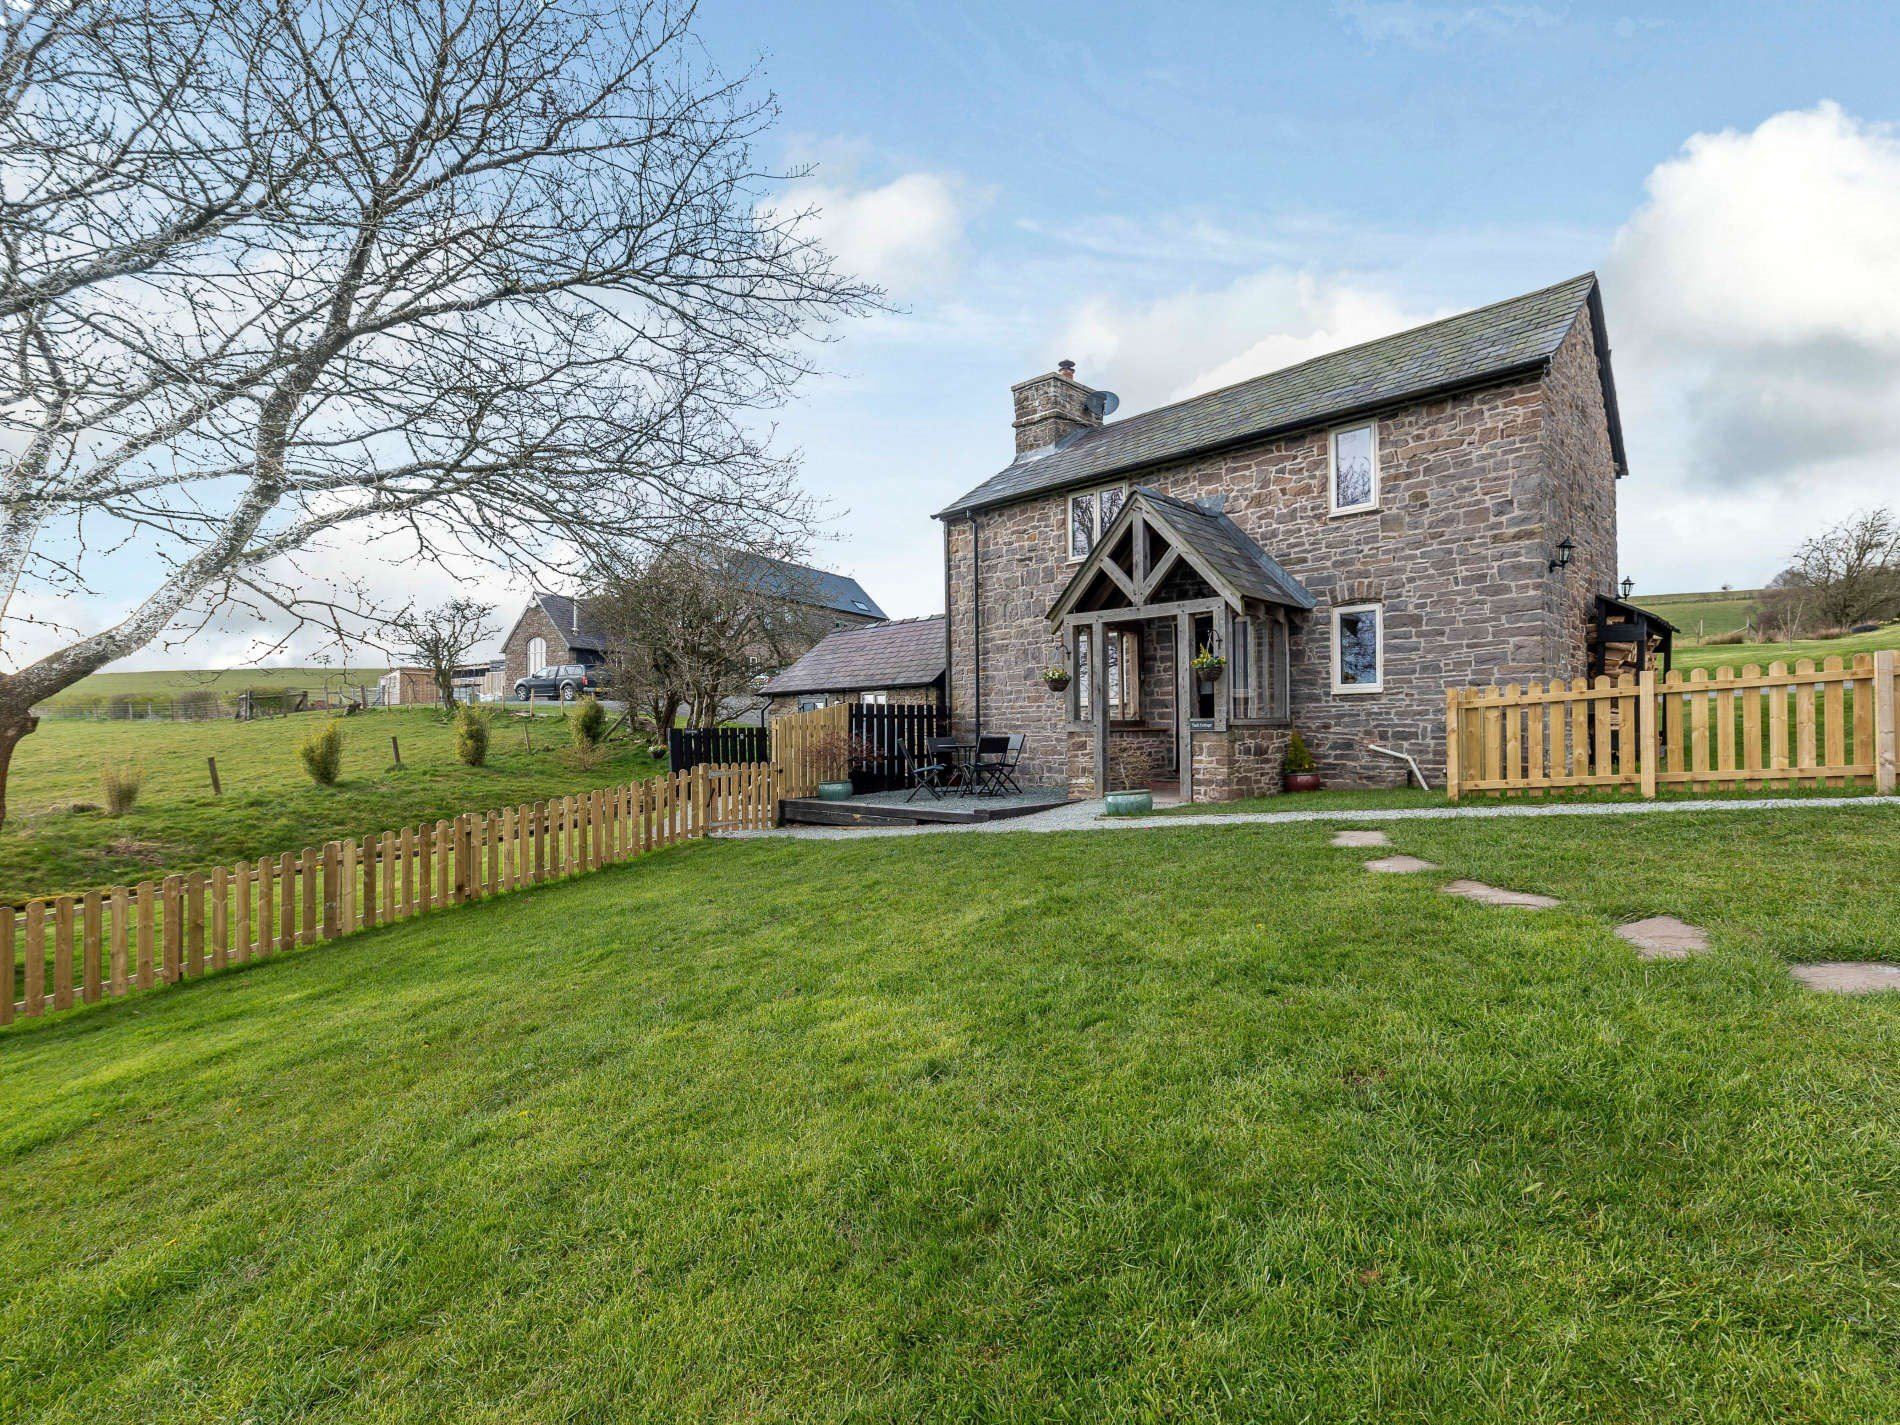 1 Bedroom Cottage in Knighton, Heart of England